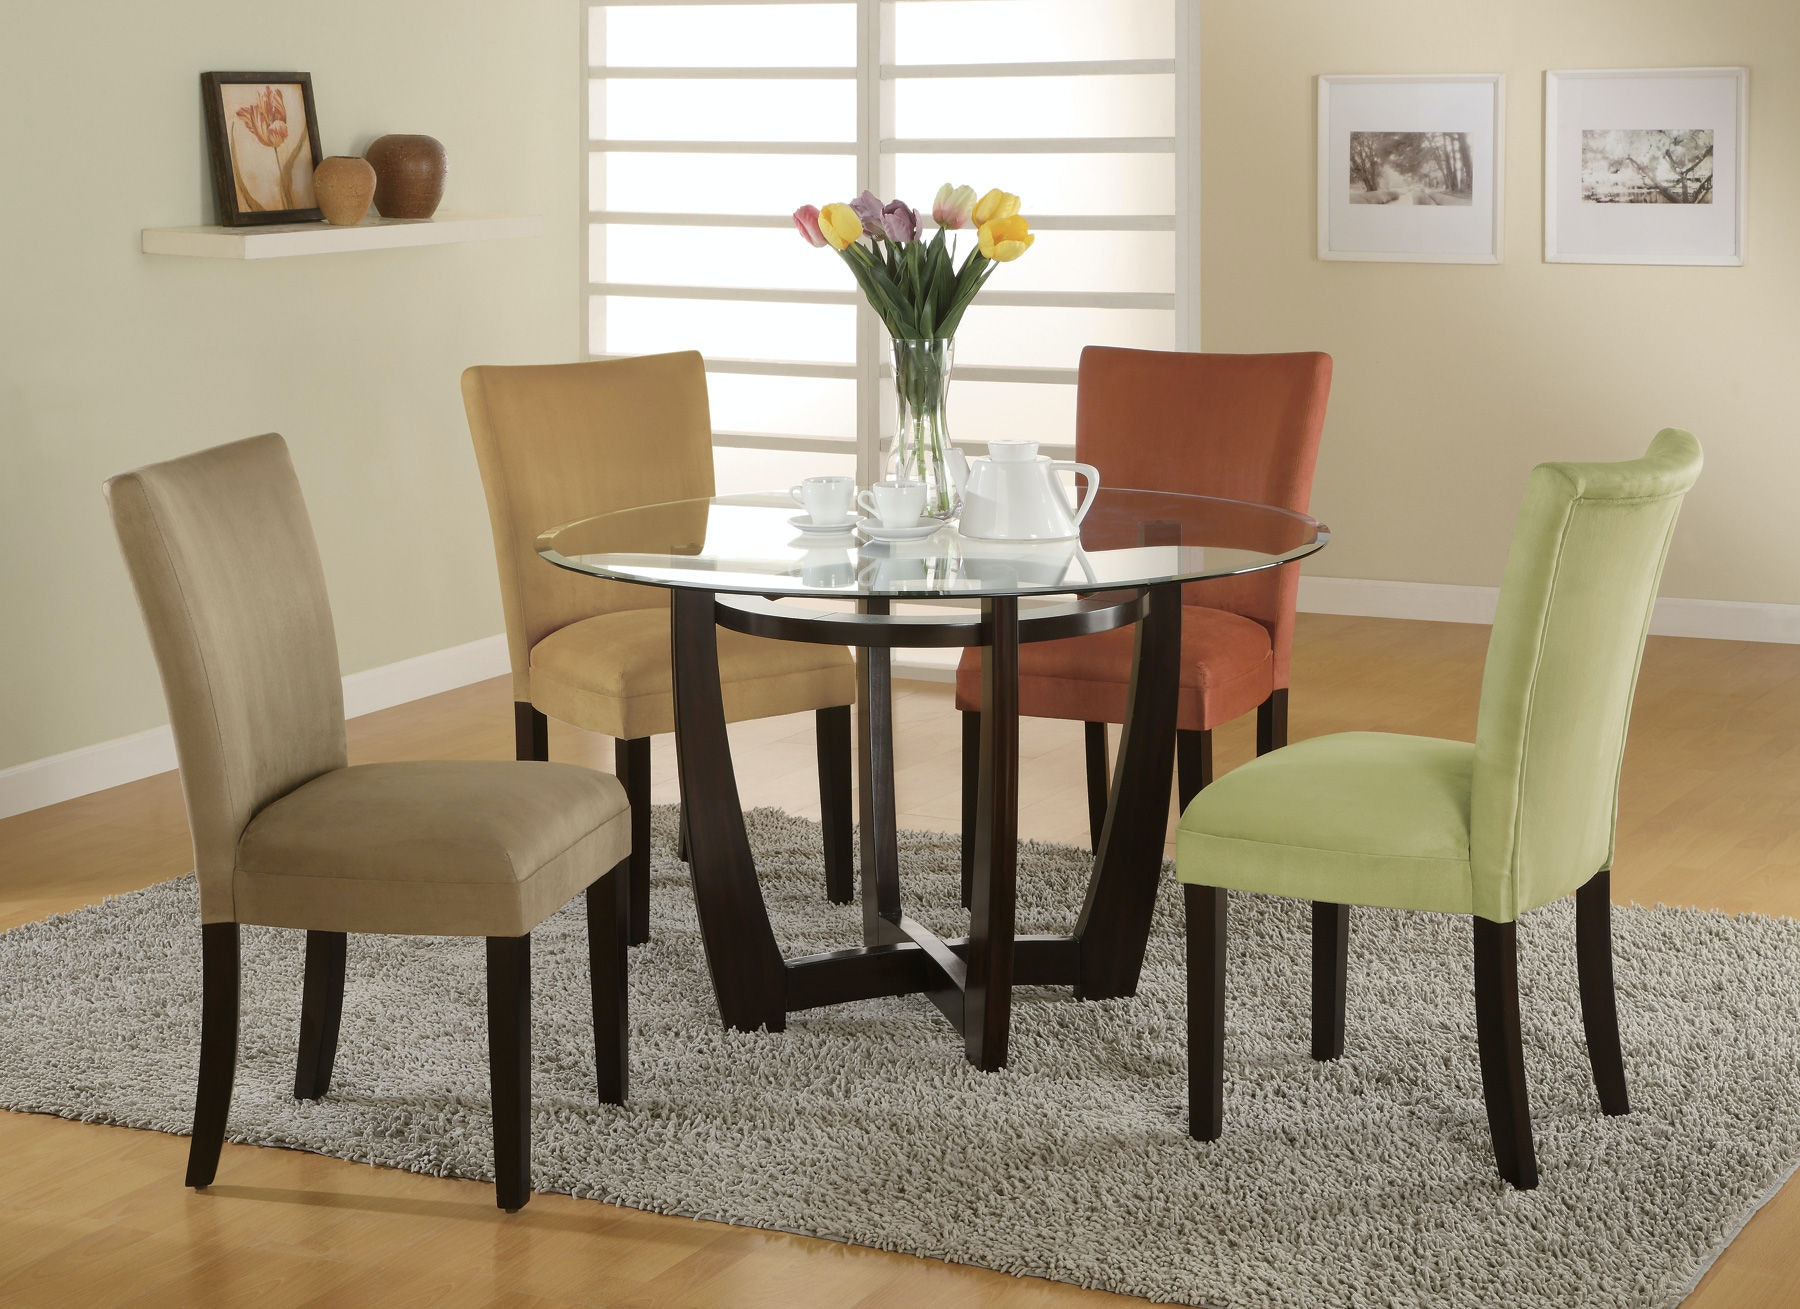 Superior Coaster Dining Room Dining Table Base 101490   Turner Furniture Company    Avon Park And Sebring, FL